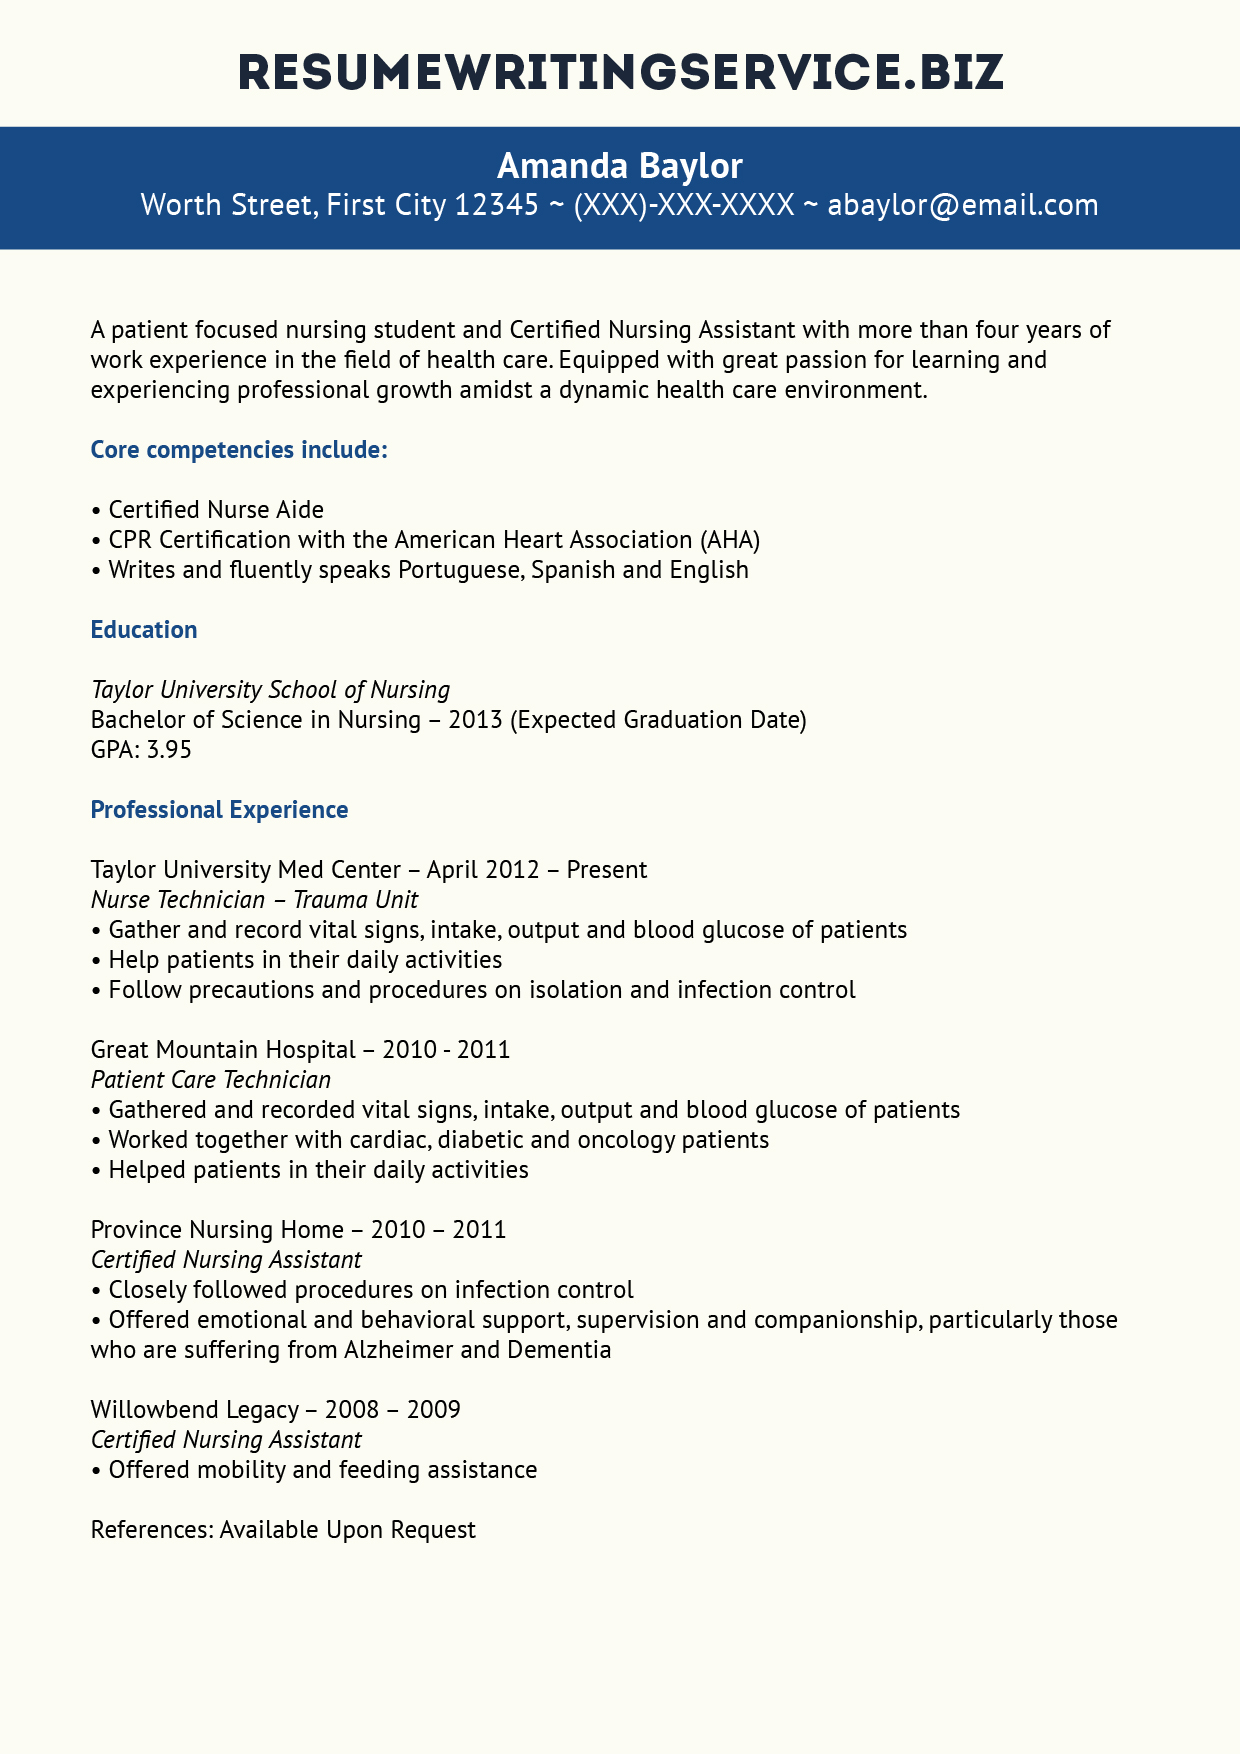 Nursing Resumes That Stand Out Great Nursing Student Resume Sample Resume Writing Service